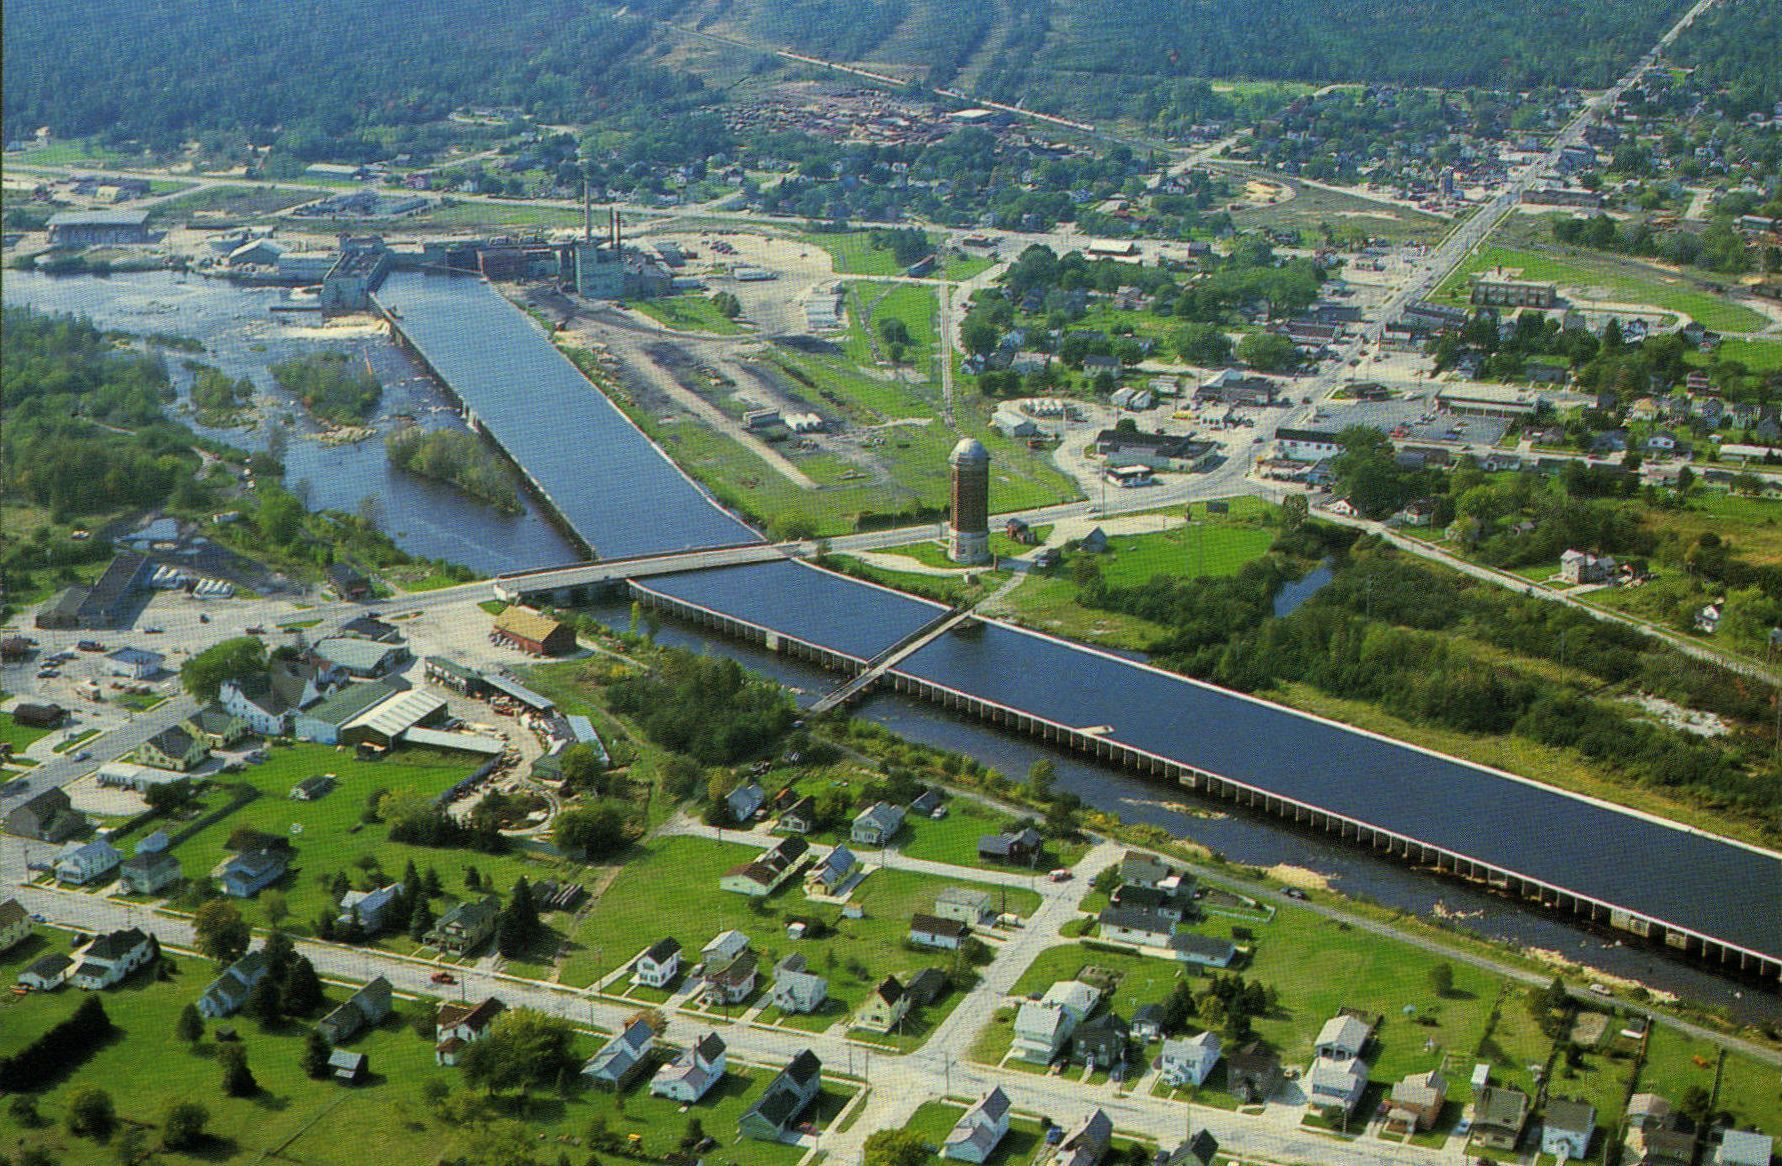 Manistique, MI: This view shows the reservoir of the Manistique River which supplies water to the Paper Mill.  Also the famous Siphon Bridge and historic water tower can be seen in the center.  Manistique is a leading vacation and resort city in Michigan's Upper Peninsula.  Photo by John Penrod (postcard).